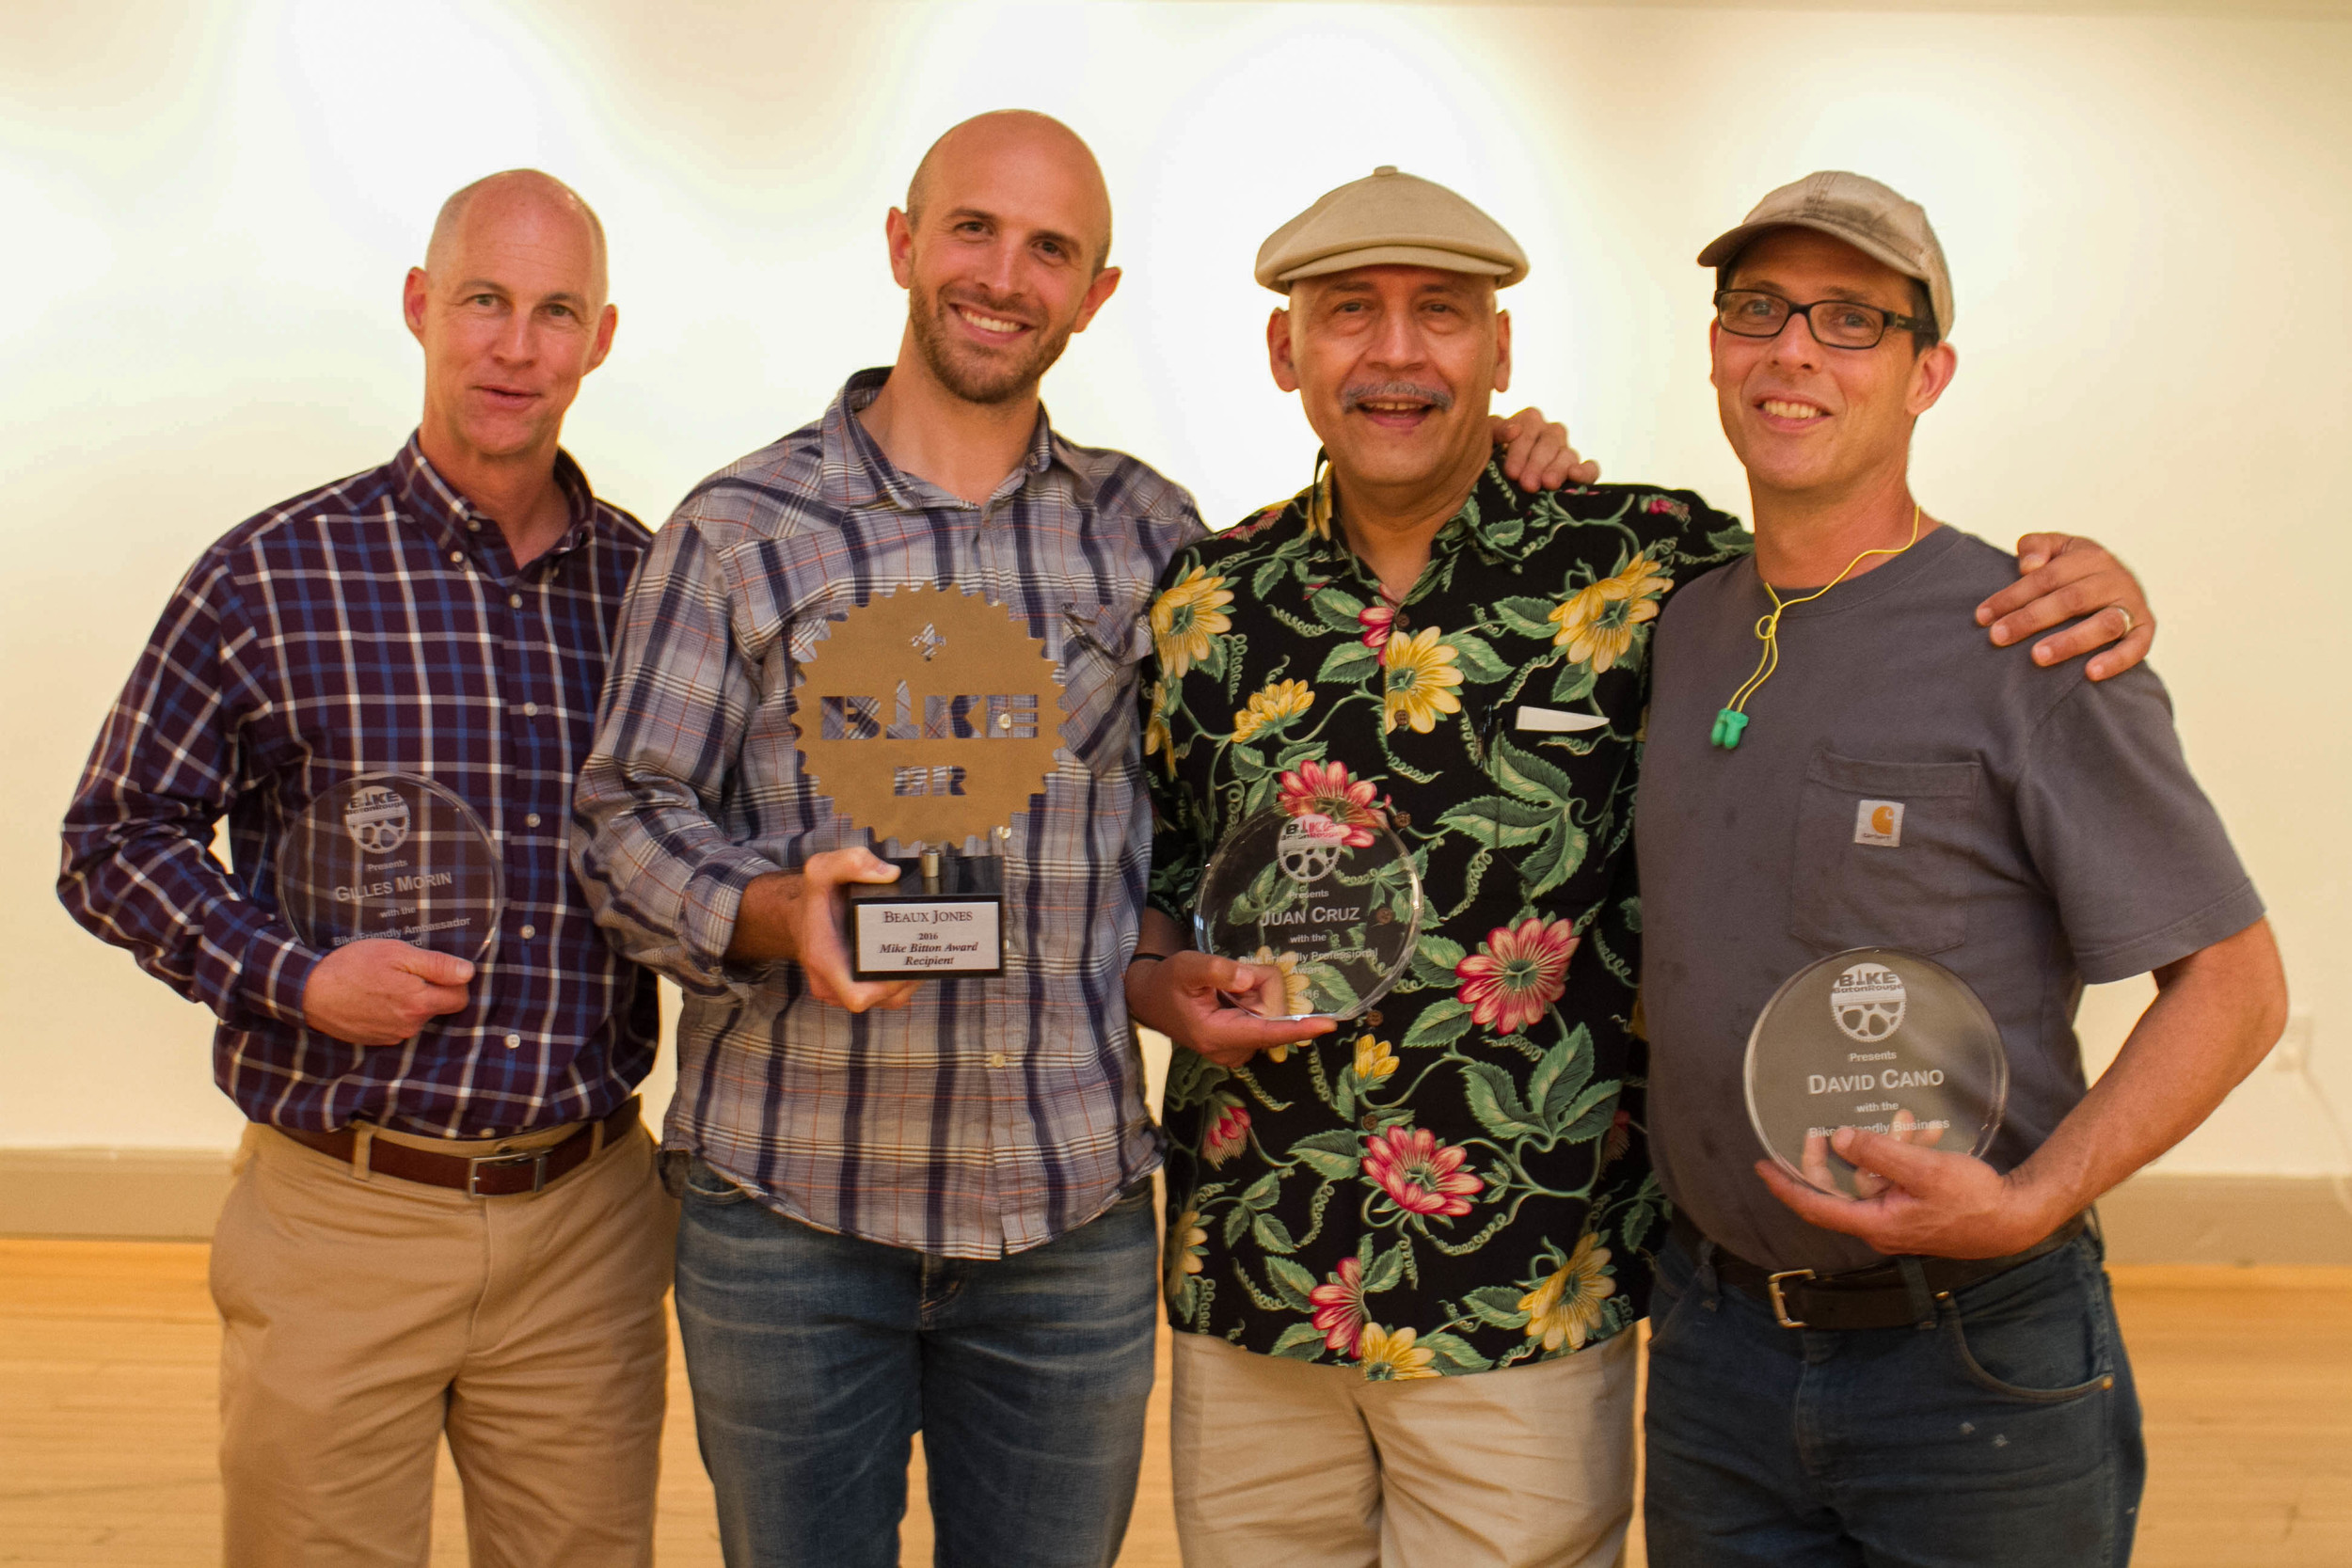 Left to Right - Gilles Morin, Beaux Jones, Juan Cruz and Dave Cano (Photograph by Irene Kato)